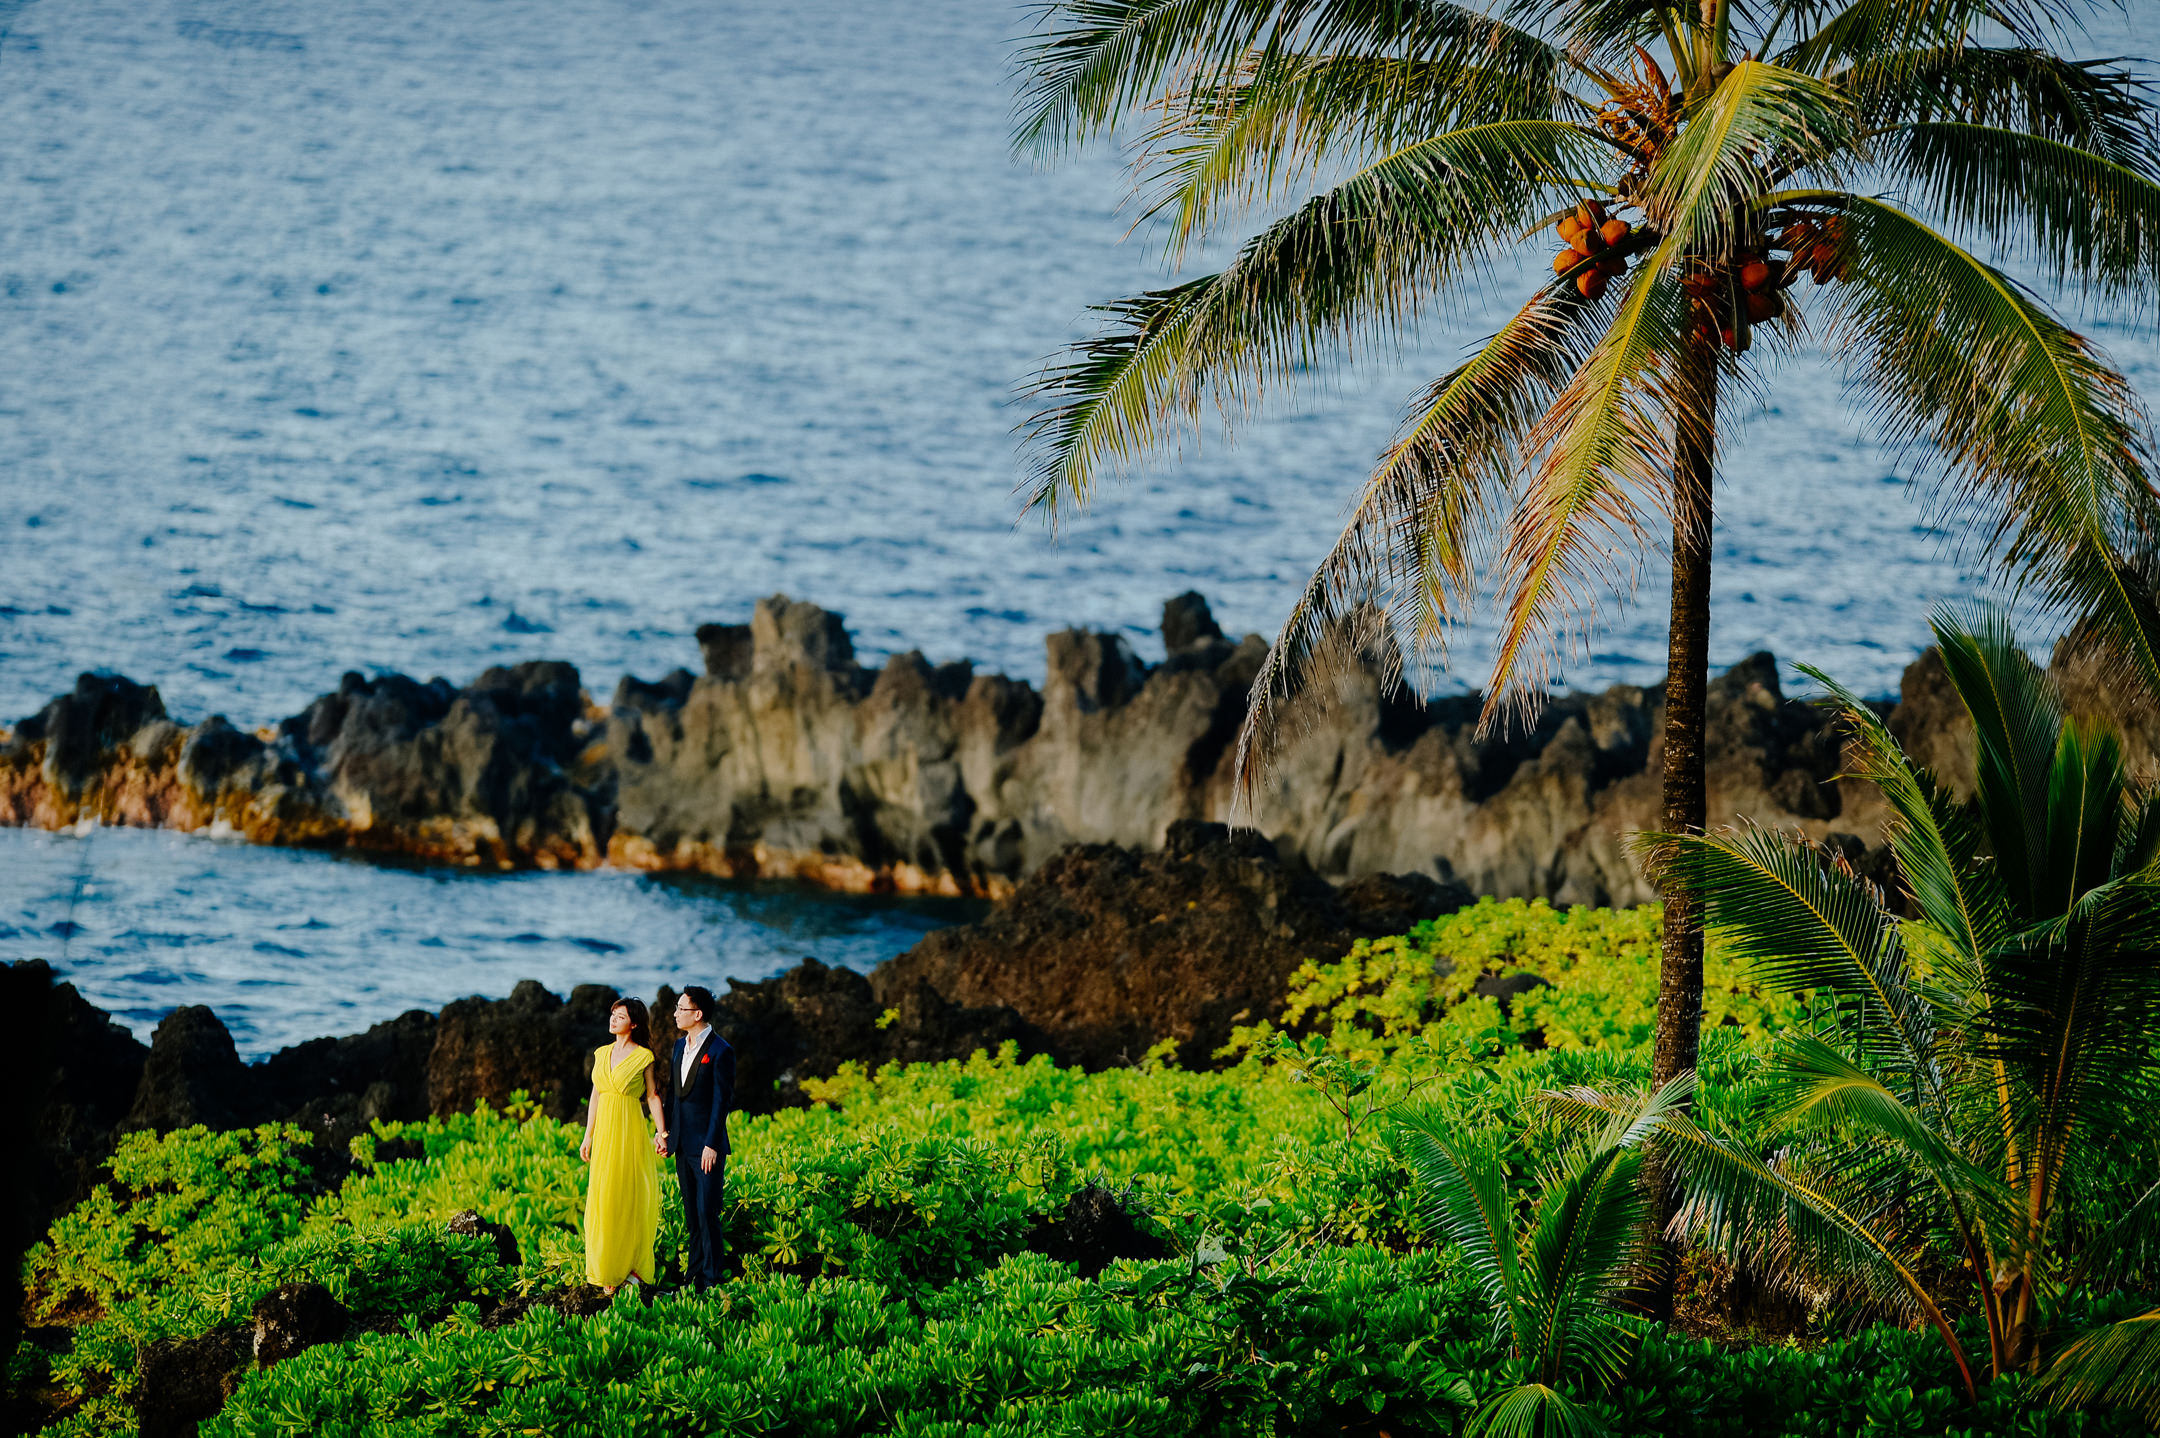 Chris_Hui_婚禮_婚紗照_pre_wedding_photography_best_009_Maui_Hawaii_茂宜岛.jpg